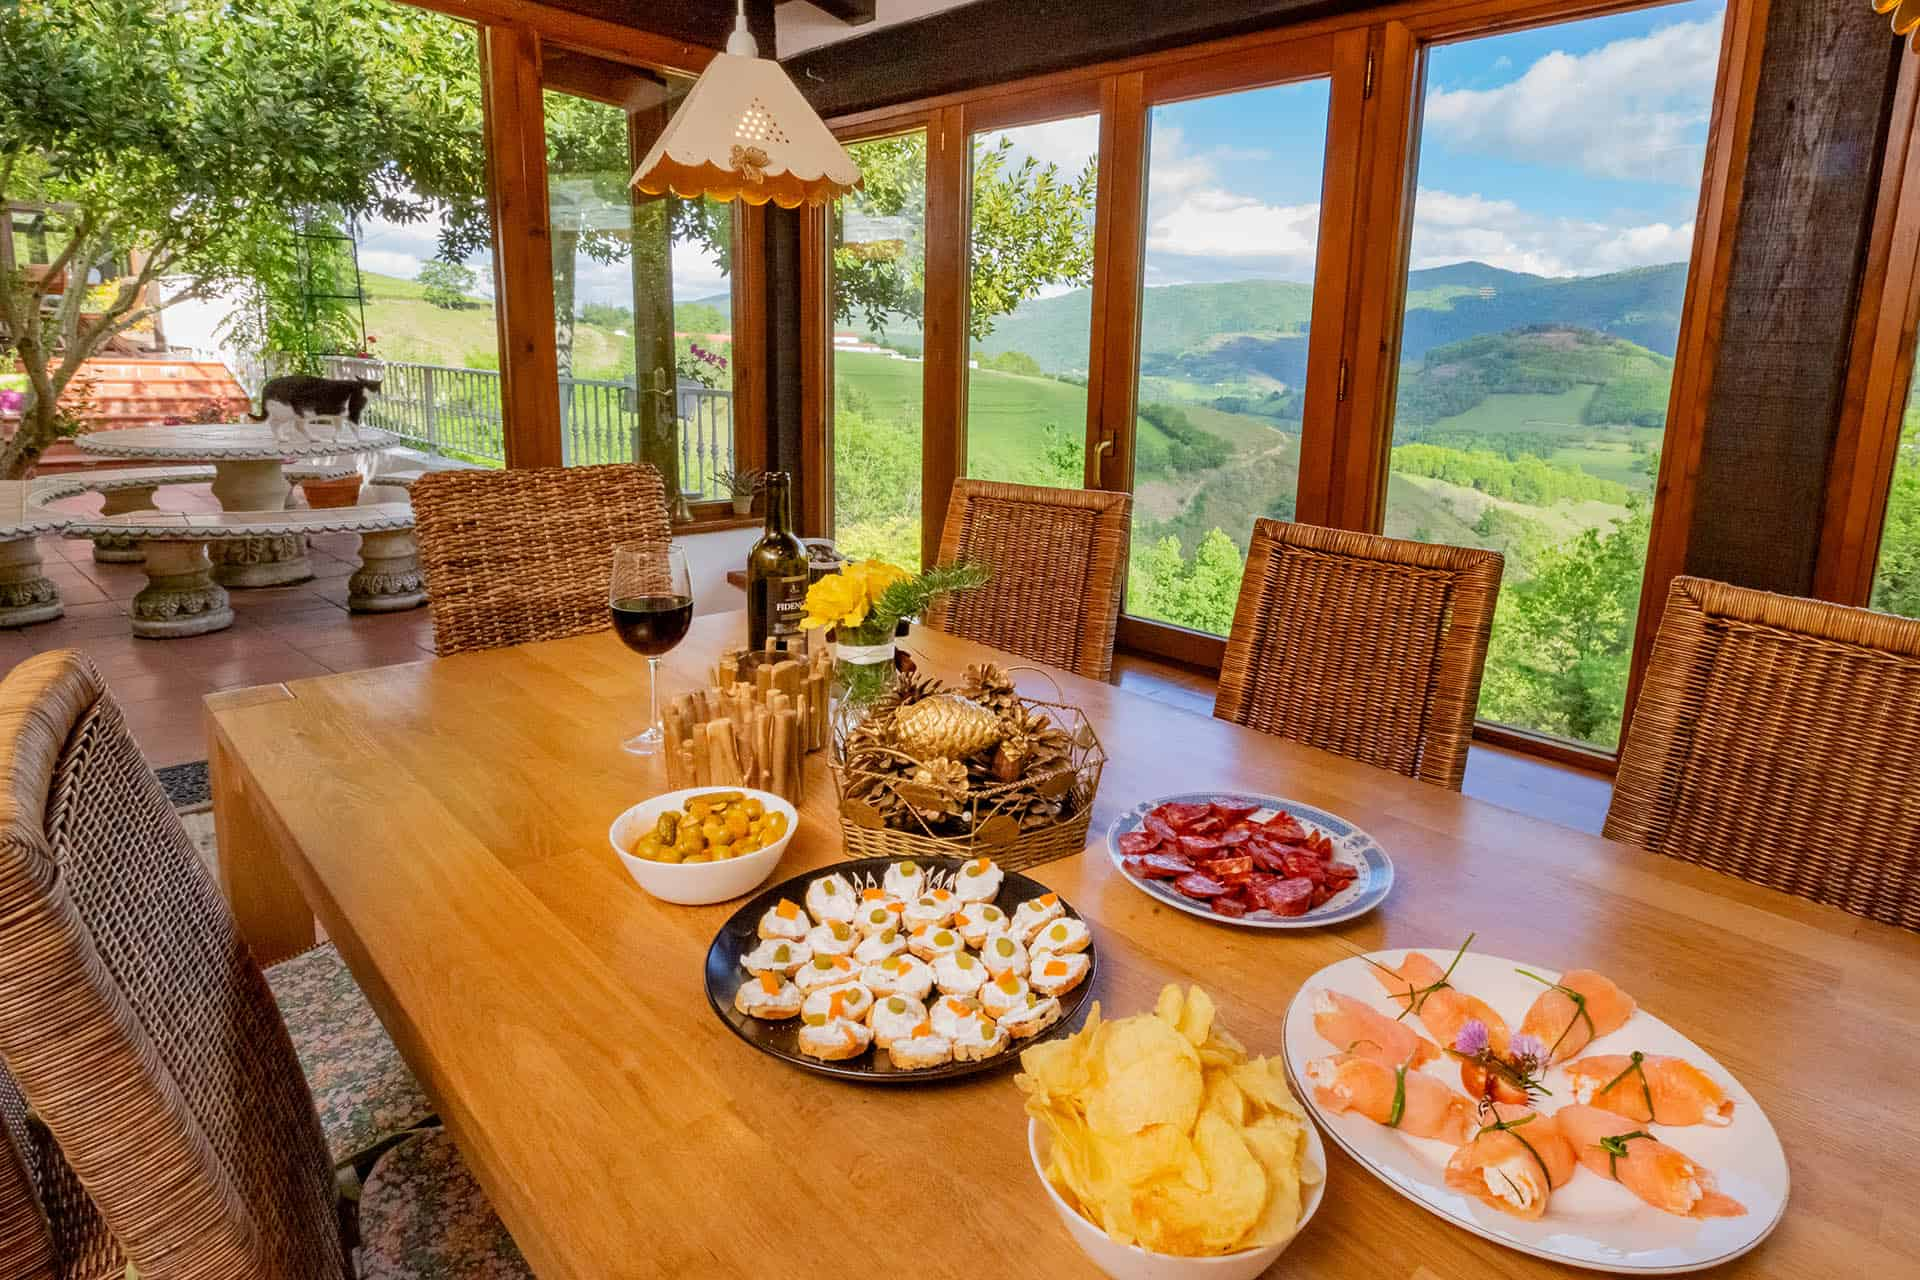 Pyrenean Experience Farmhouse in the Pyrenees